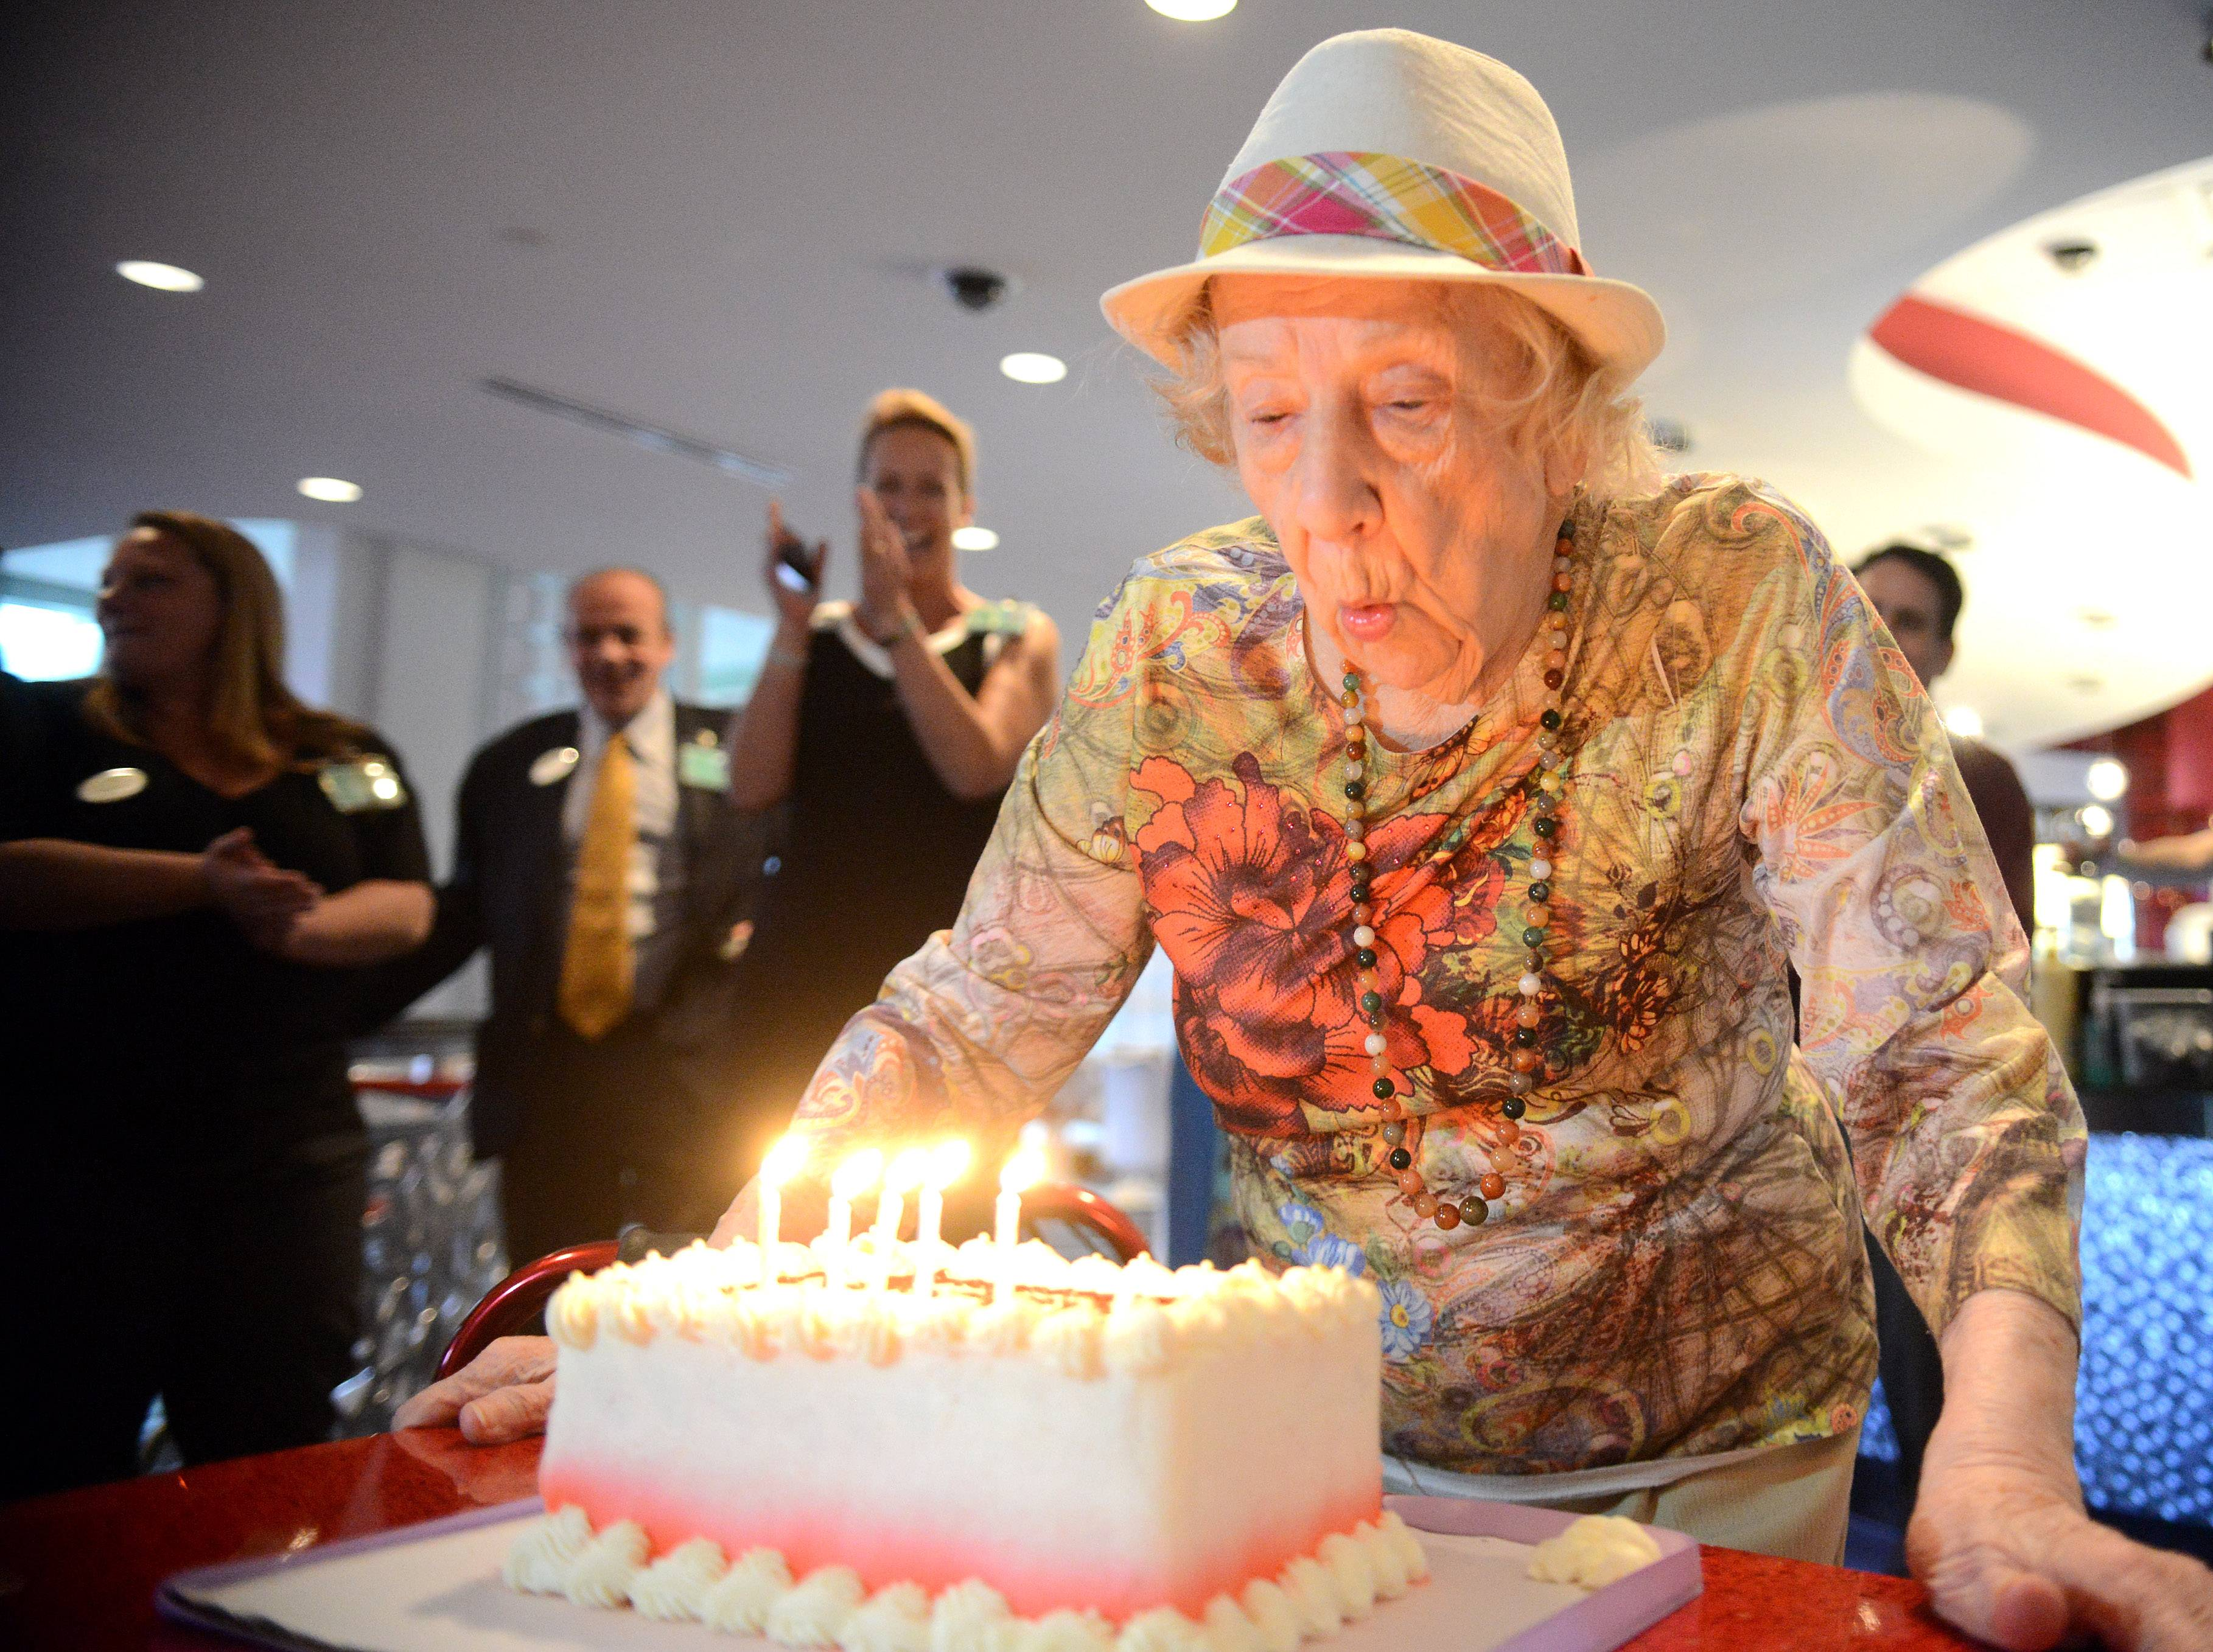 Clarice Colangelo of Elmhurst blows out the candles while celebrating her 101st birthday Monday afternoon at Prime BurgerHouse at the Grand Victoria Casino in Elgin. She been coming to gamble at the casino every Monday and Thursday for about eight years.